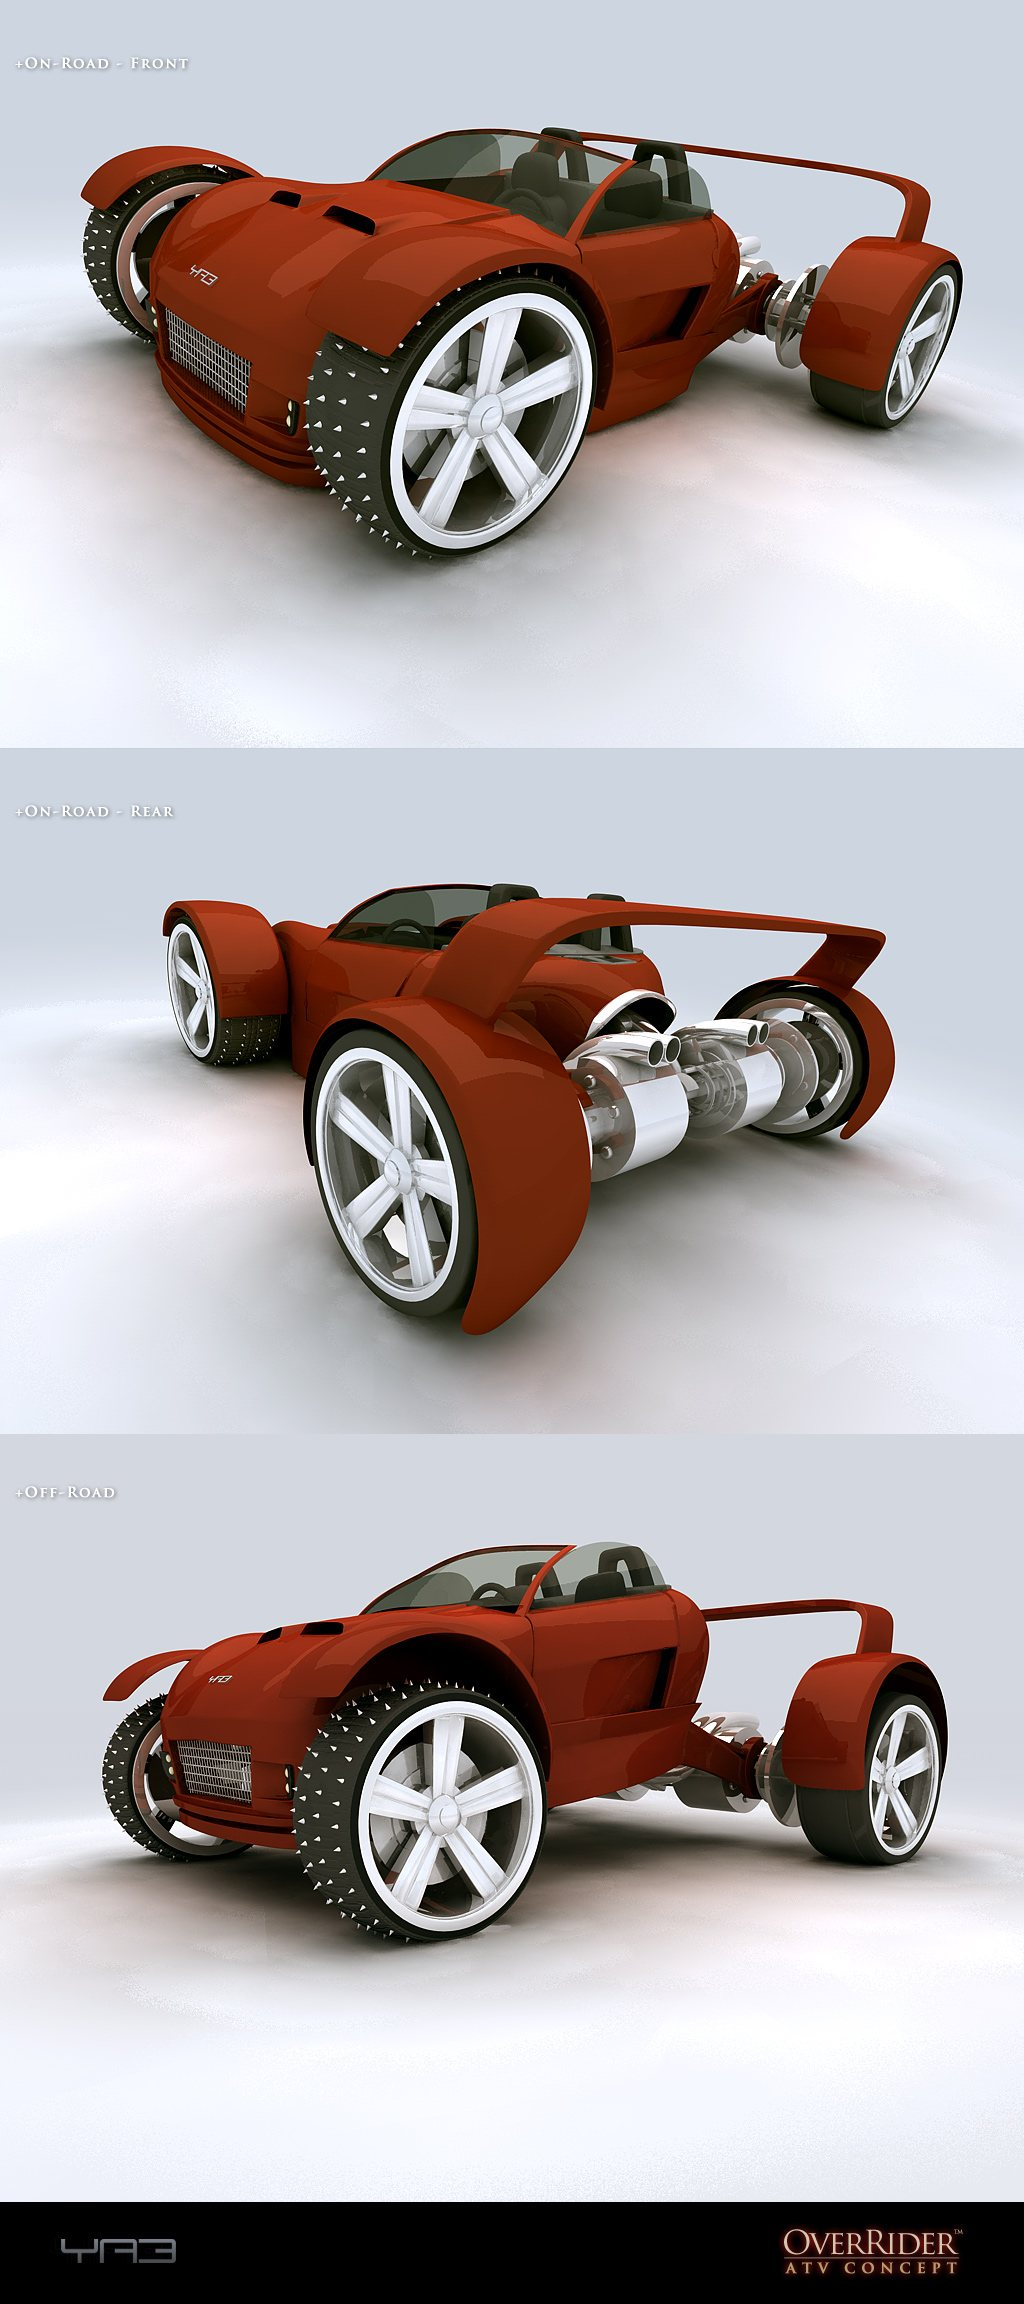 75 Concept Cars Of The Future Incredible Design - Designsmag